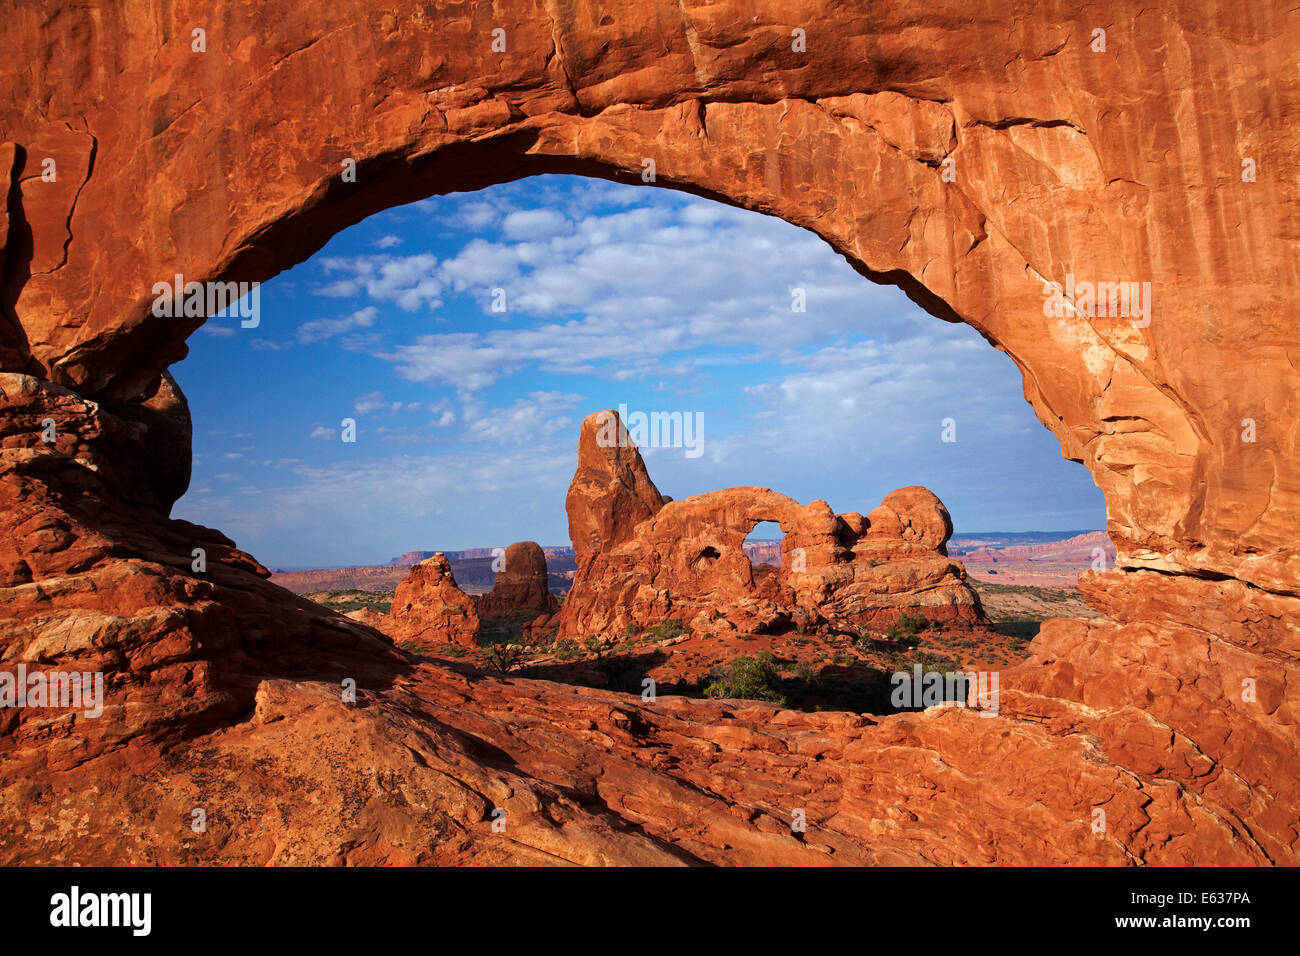 Turret Arch, seen through North Window in The Windows Section ...